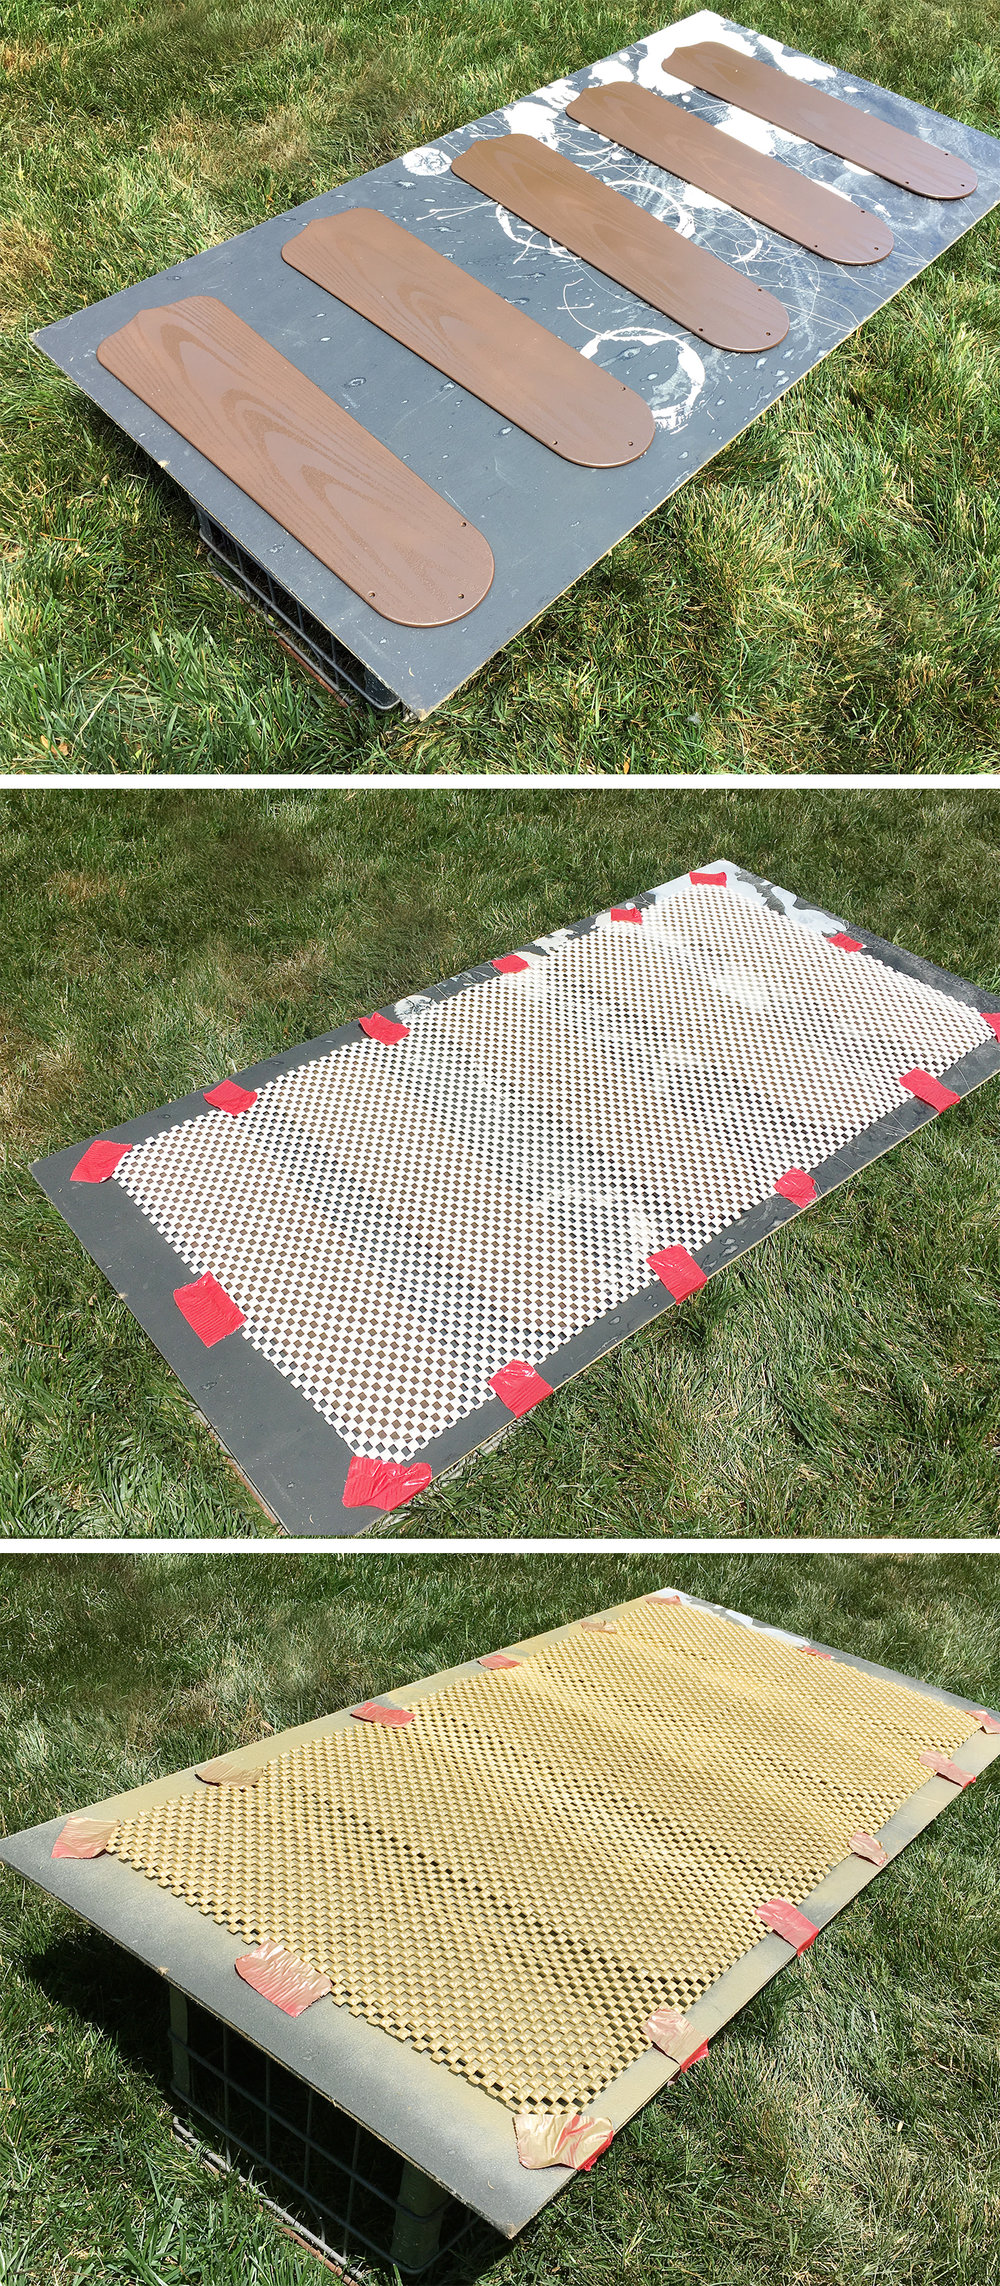 cover the fan blades with a rug pad, spray with gold for a fun checkered look #ceilingfan #DIY #upcycle